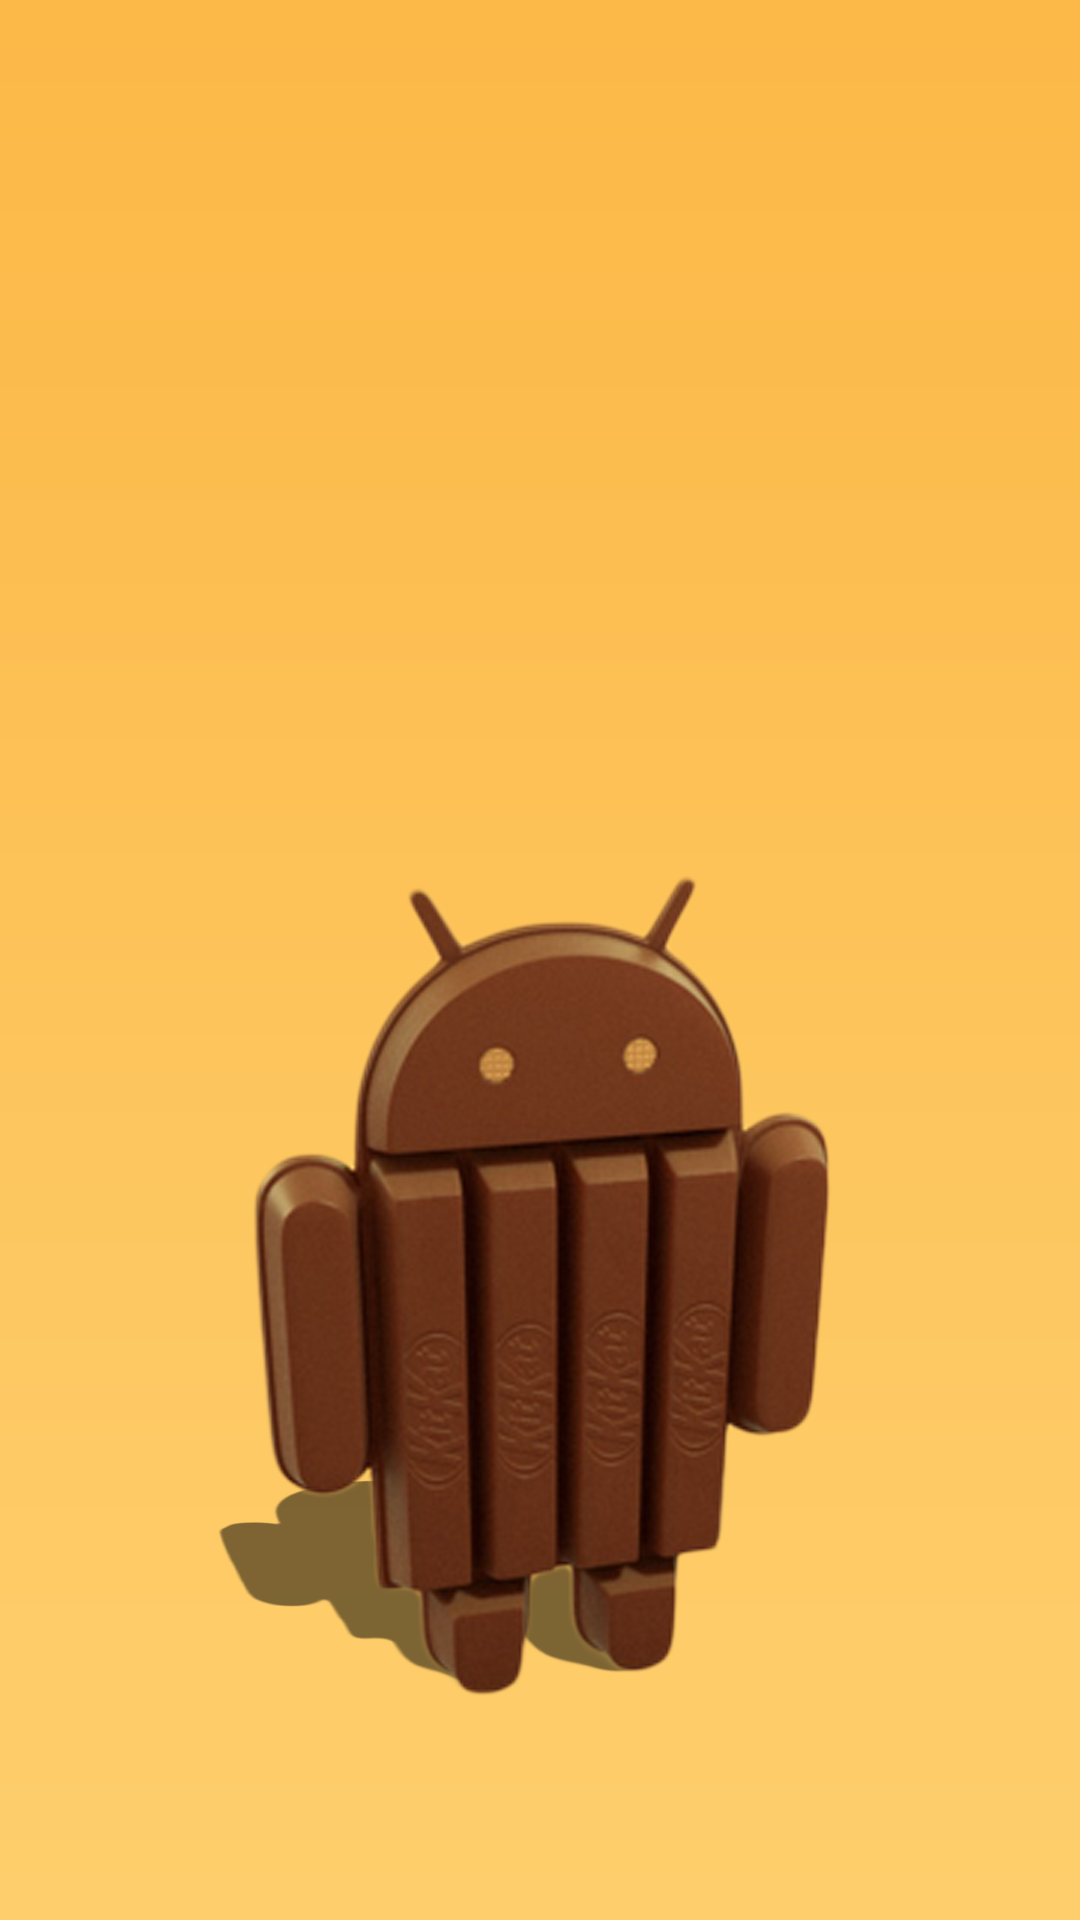 Android Kitkat Smartphone Wallpapers HD